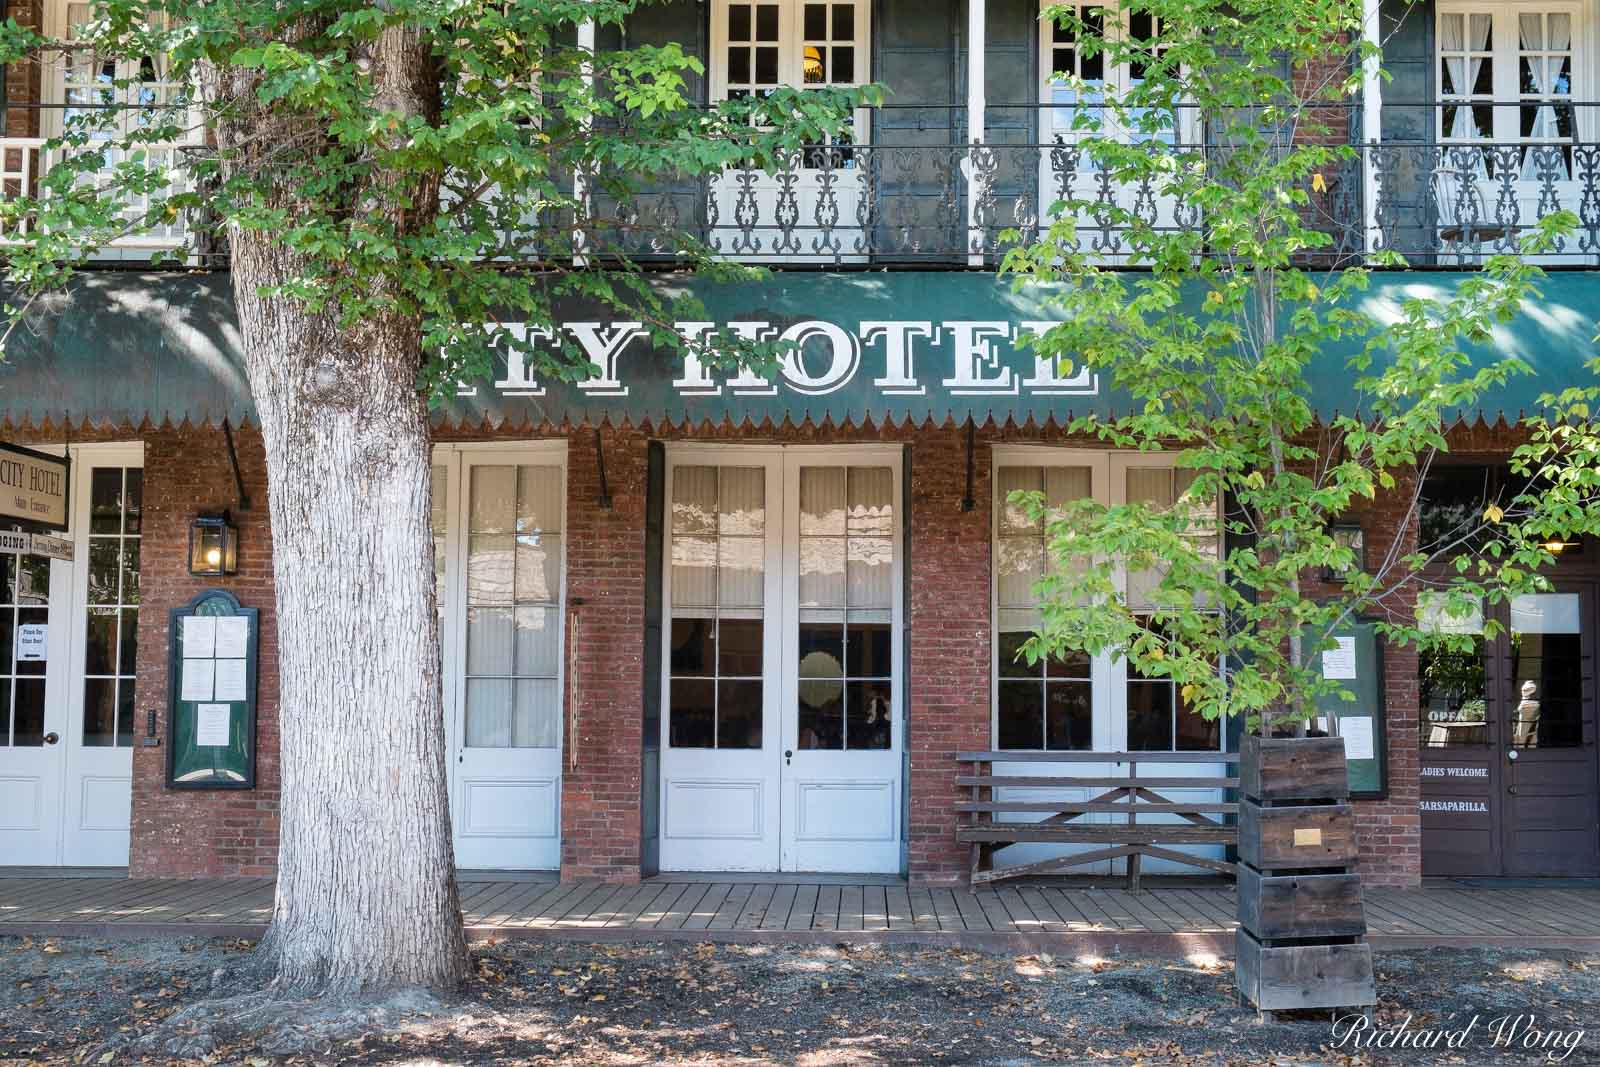 City Hotel at Columbia State Historic Park, Columbia, California Dating back to 1856, City Hotel is a restored 19th century country...